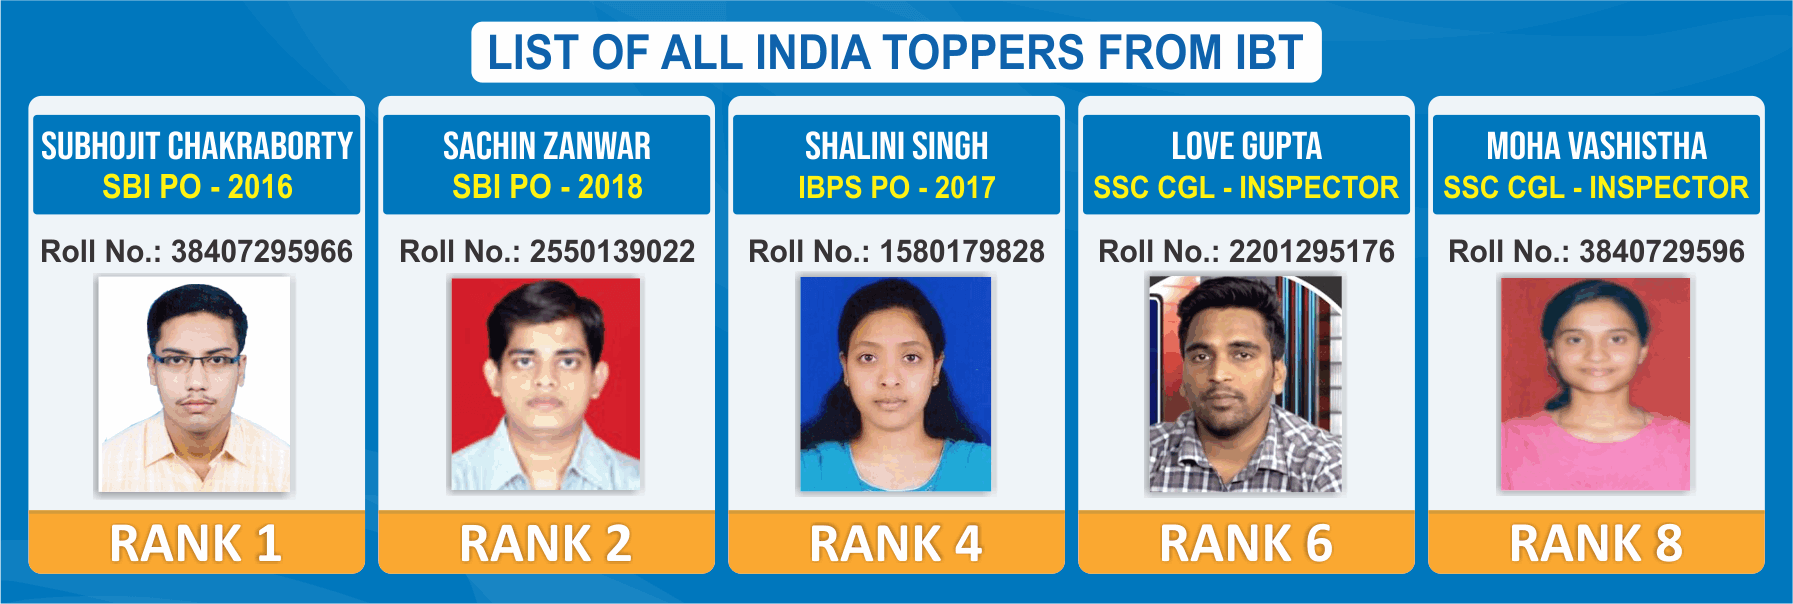 LIST OF TOPPERS FROM IBT